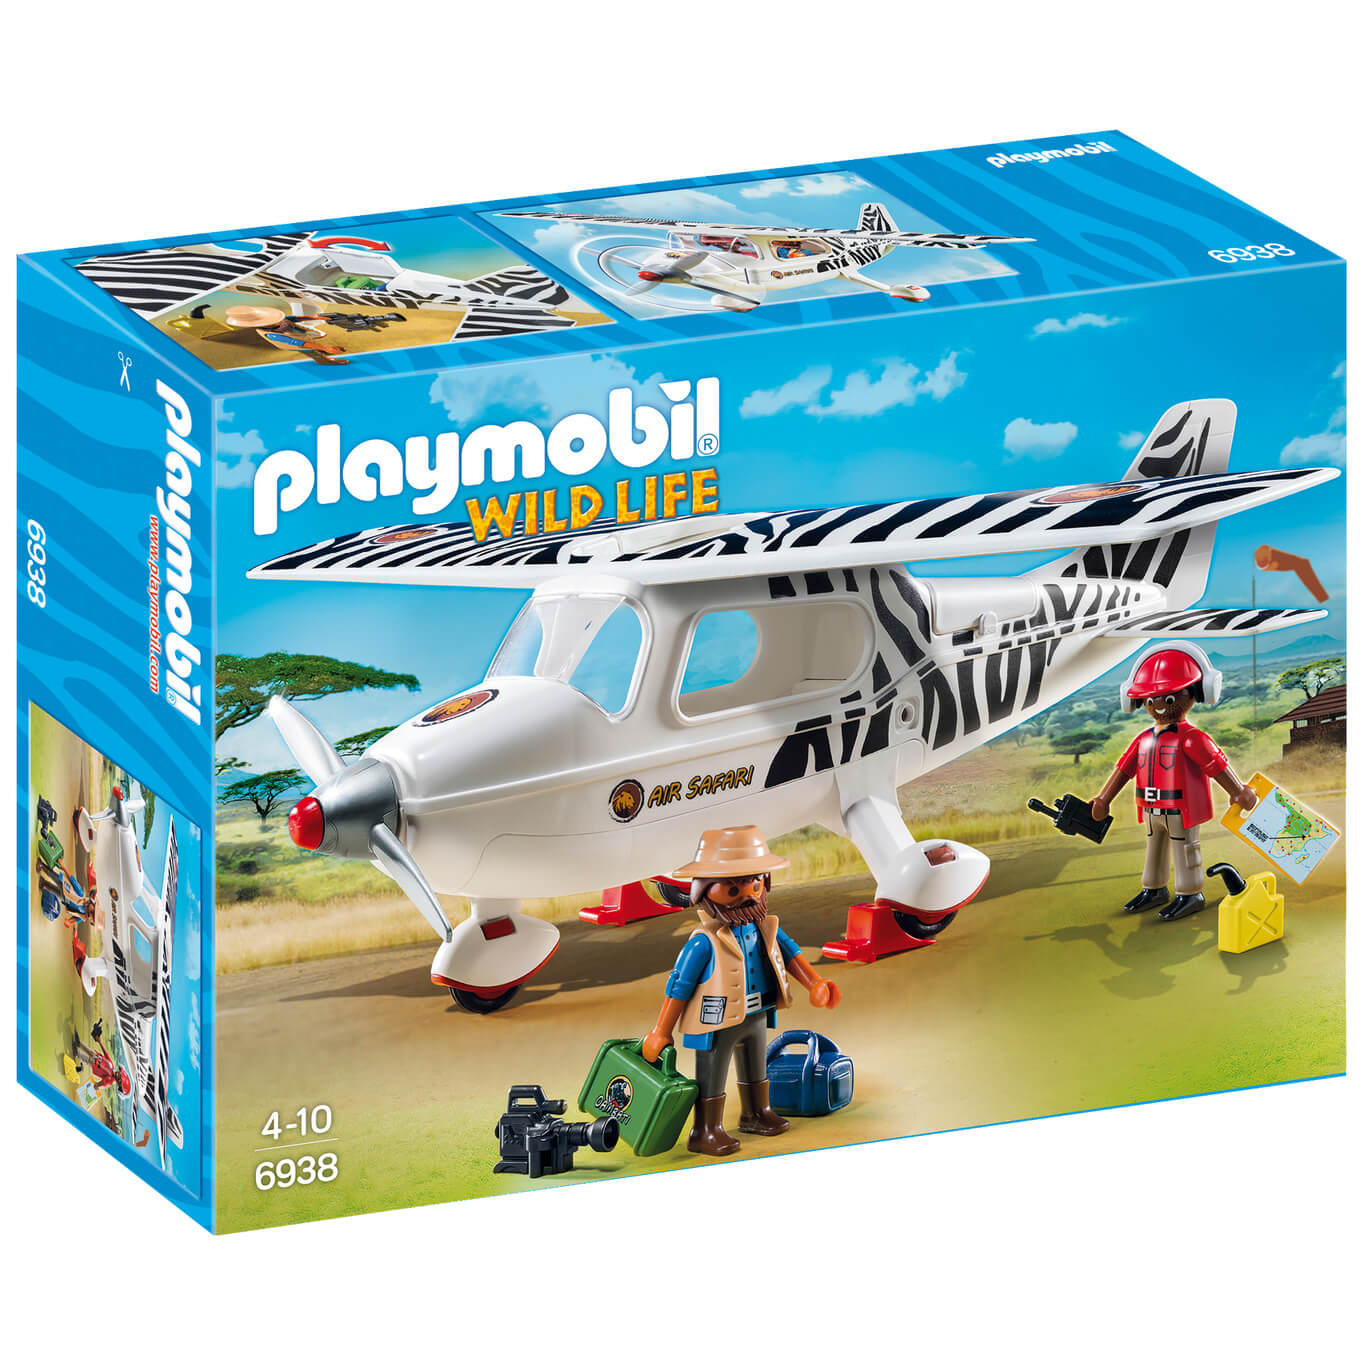 Avion avec explorateurs - Playmobil (6938)